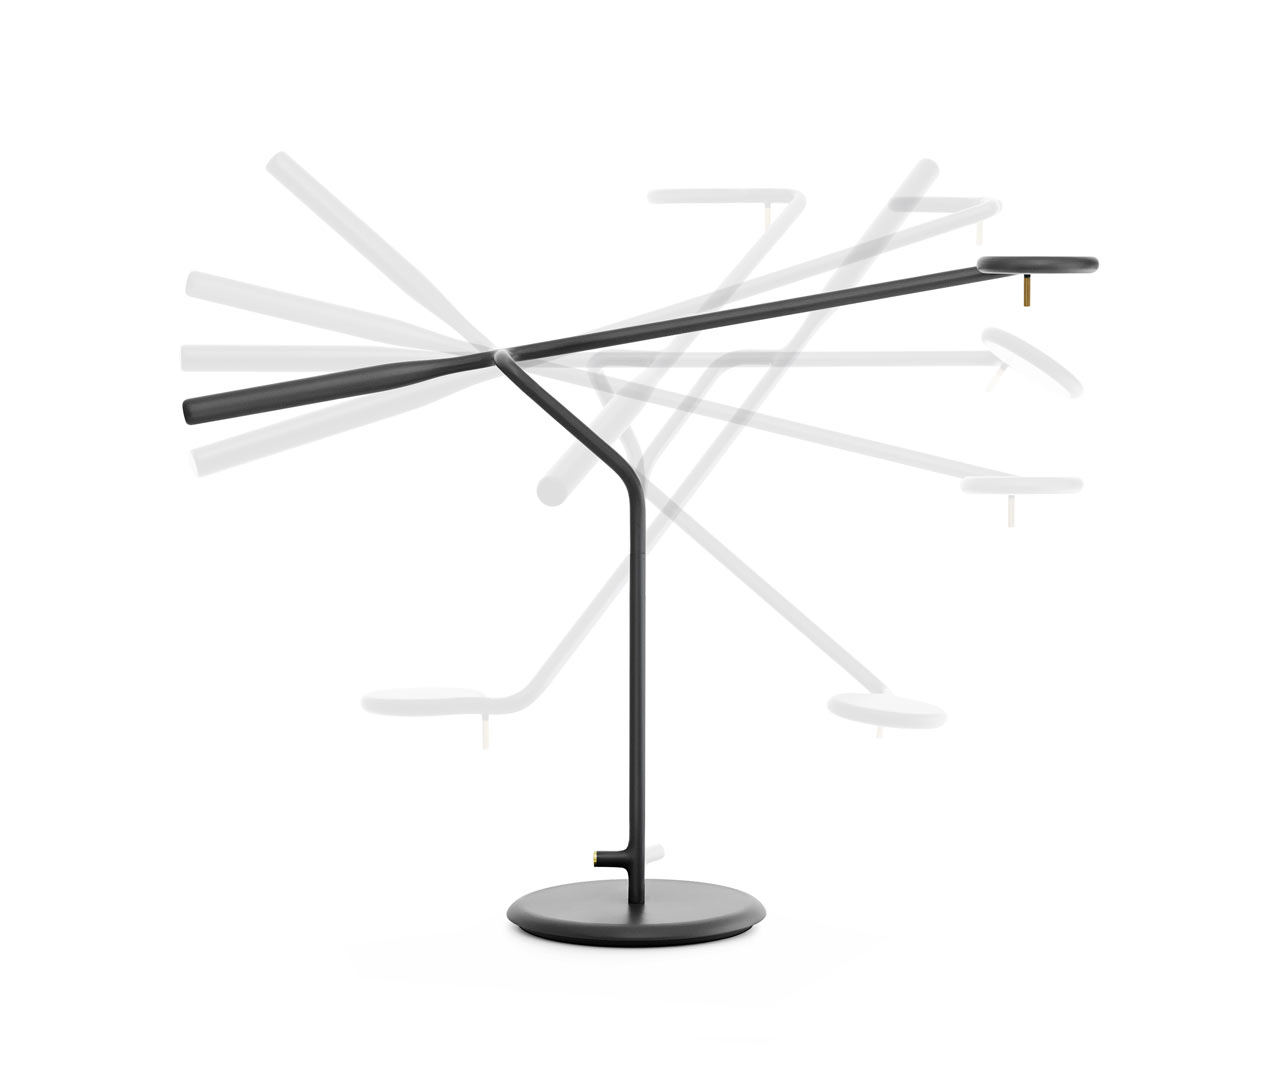 Modular LED Table Lamp with Flexible Positioning